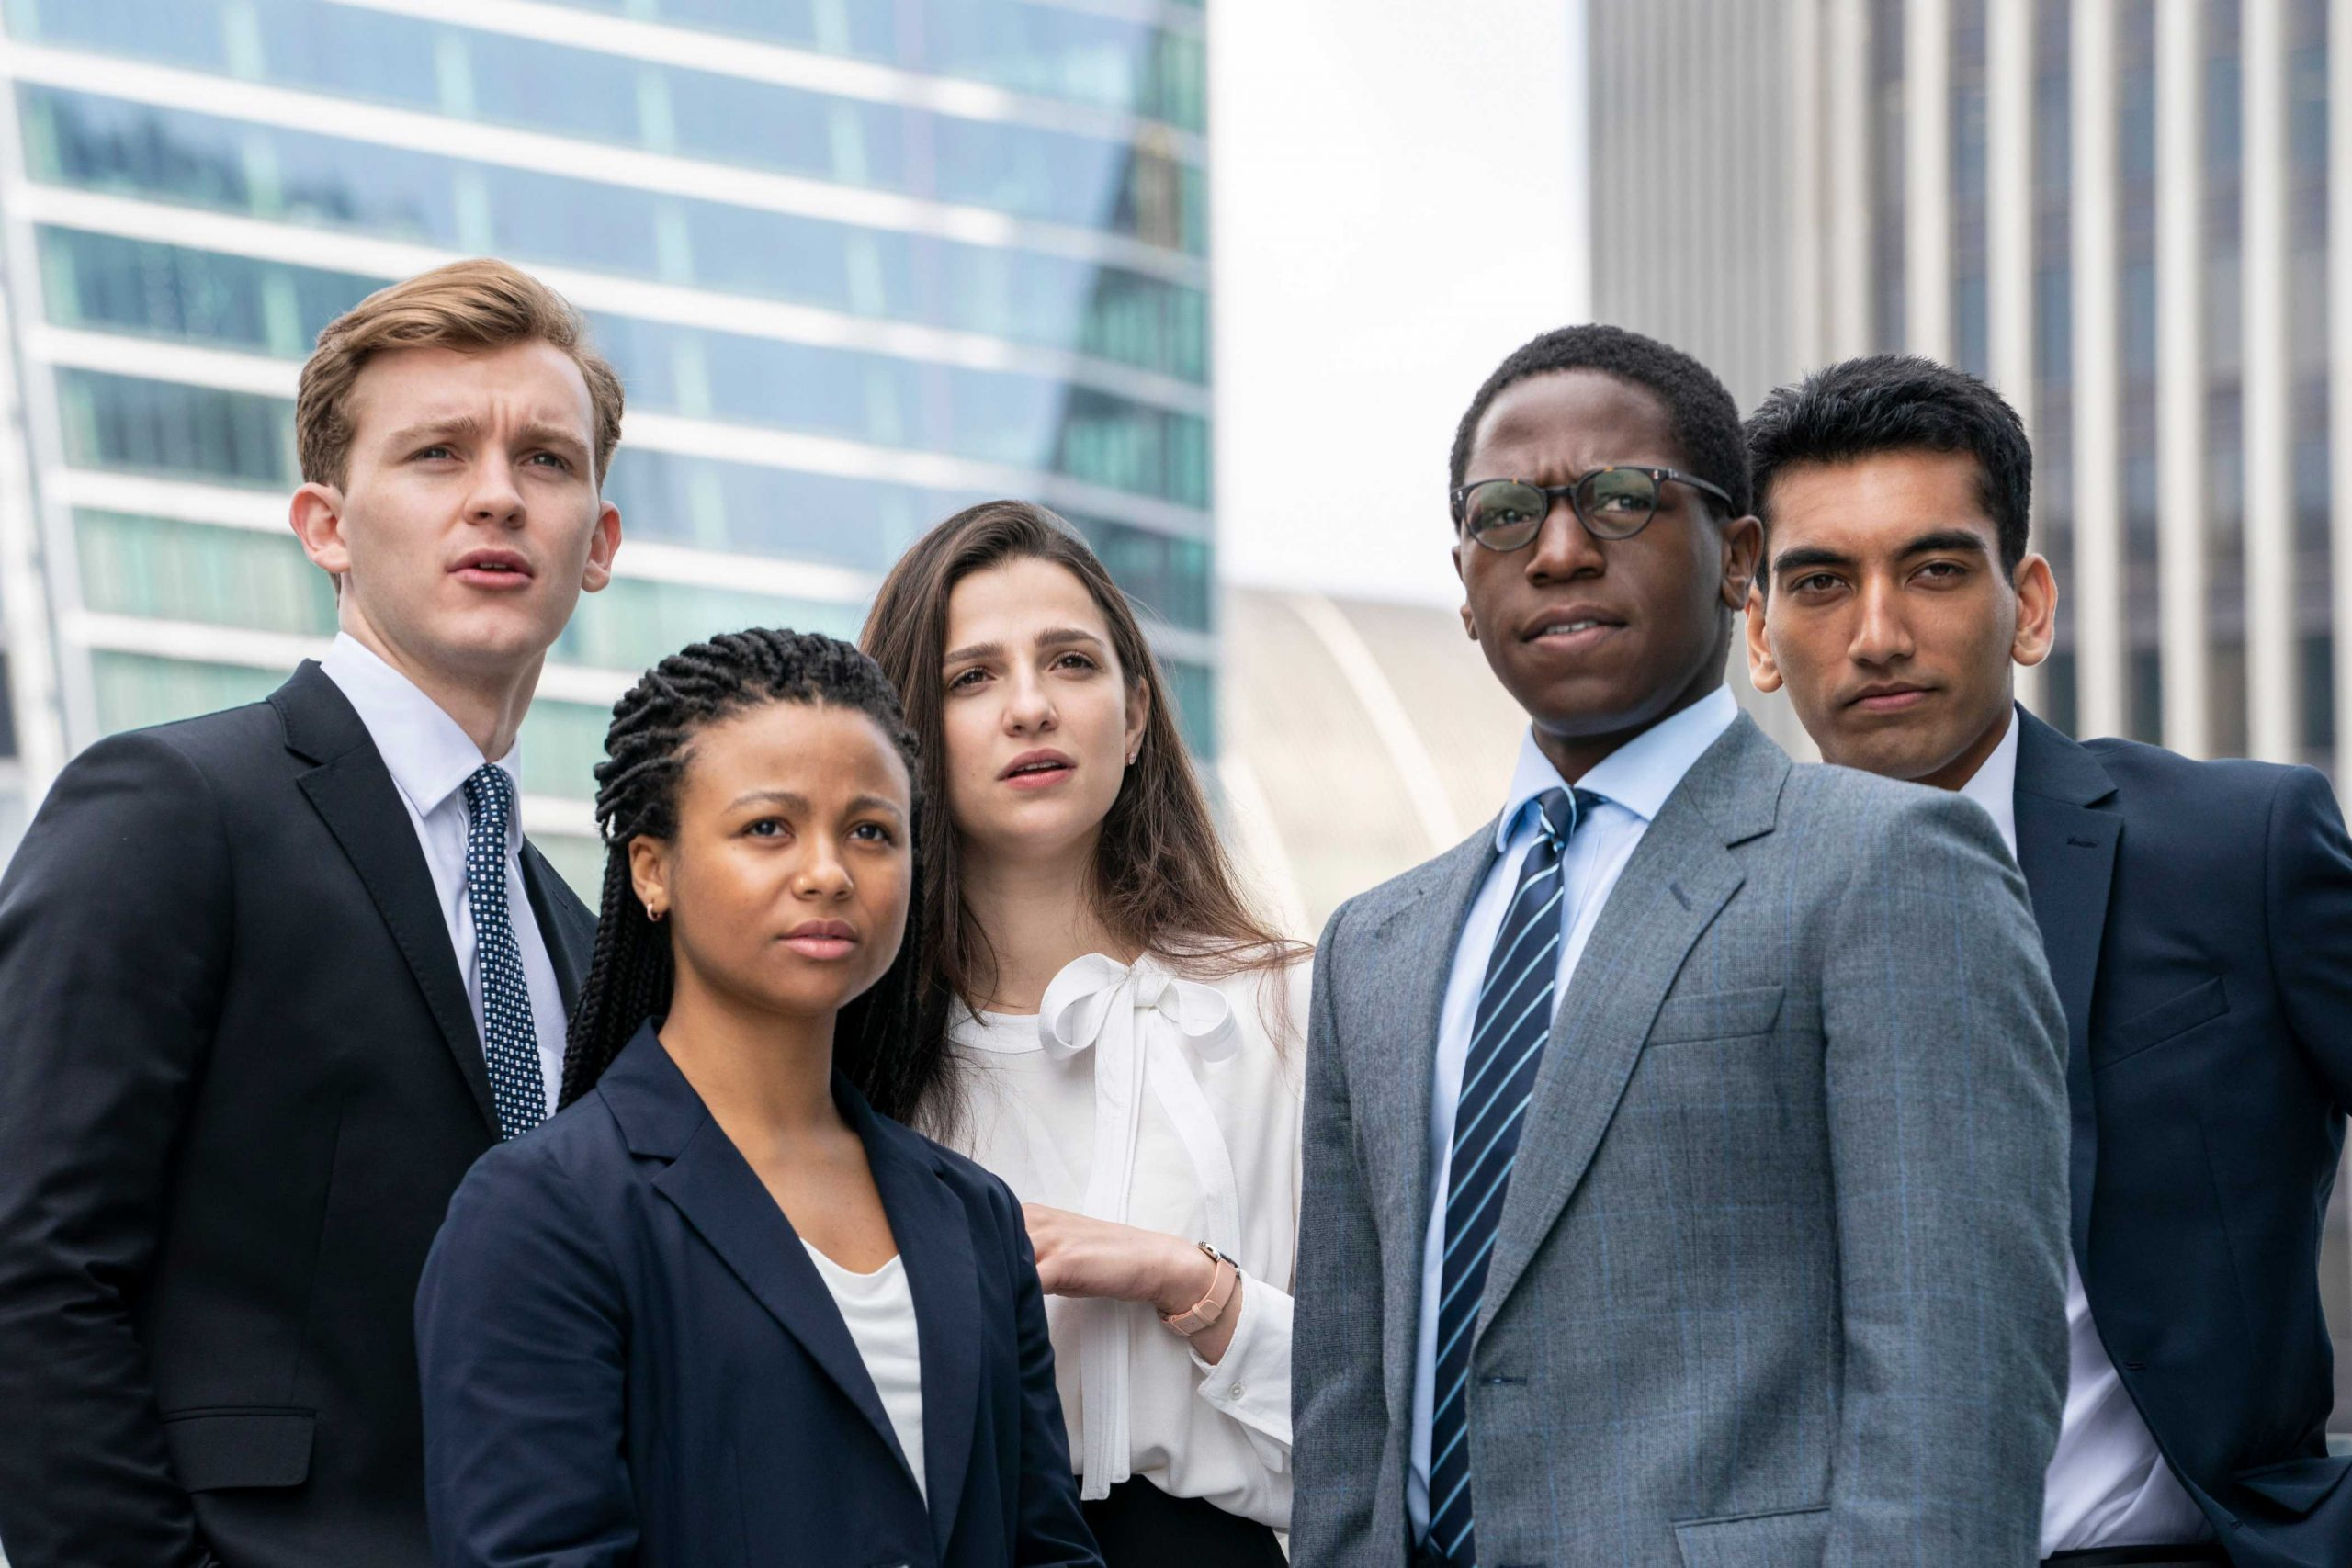 New HBO drama series Industry debuts 10 November at 11am exclusively on HBO GO and HBO